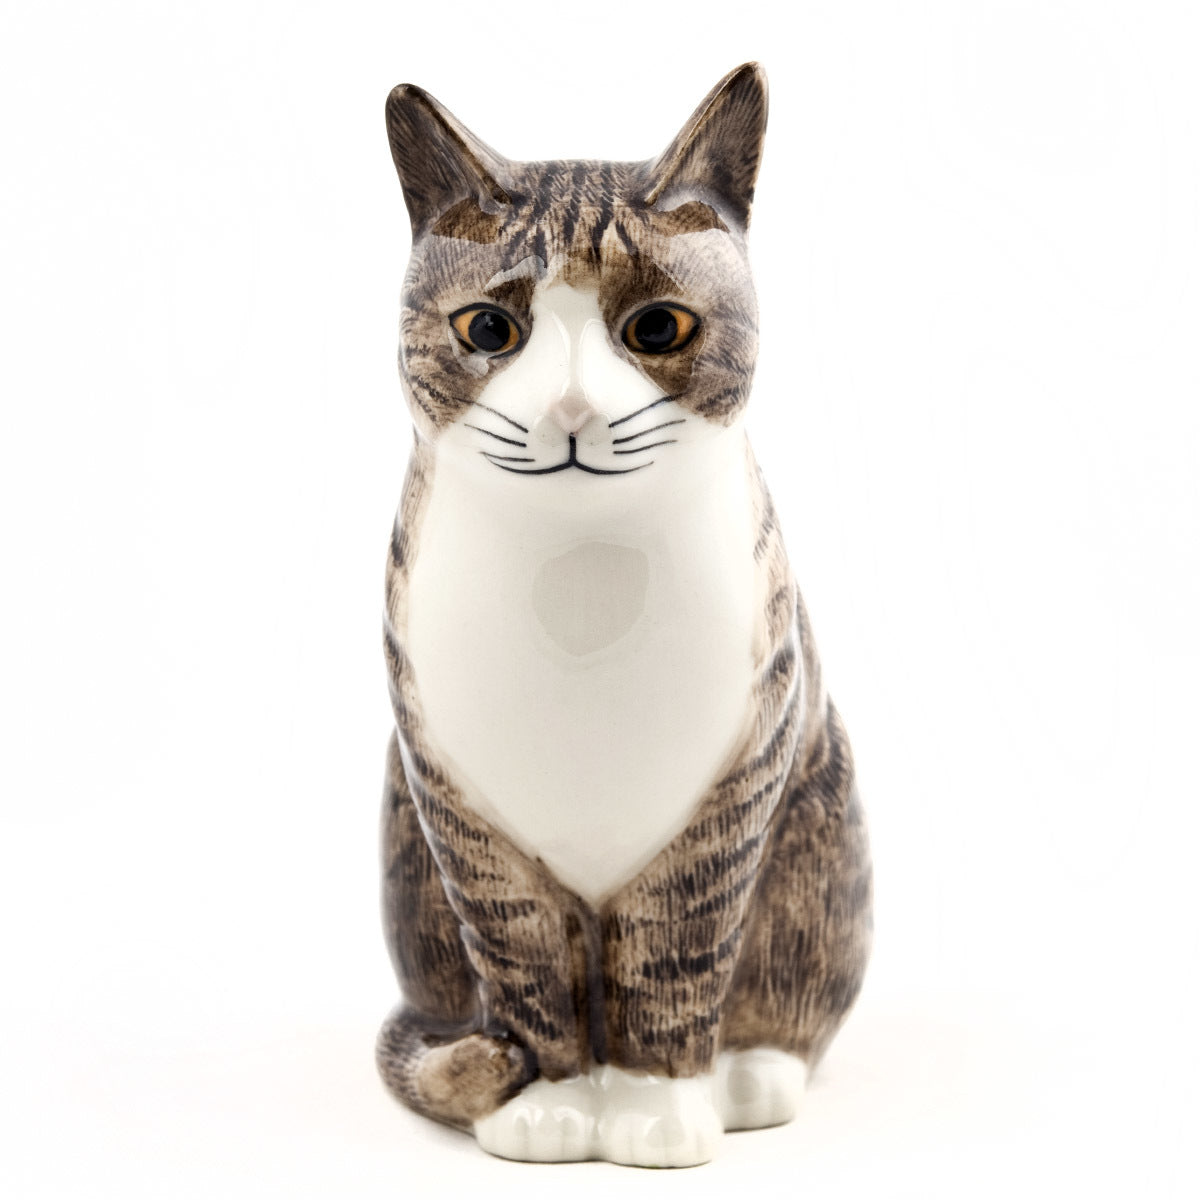 Quail Flower Vase Millie - Cat